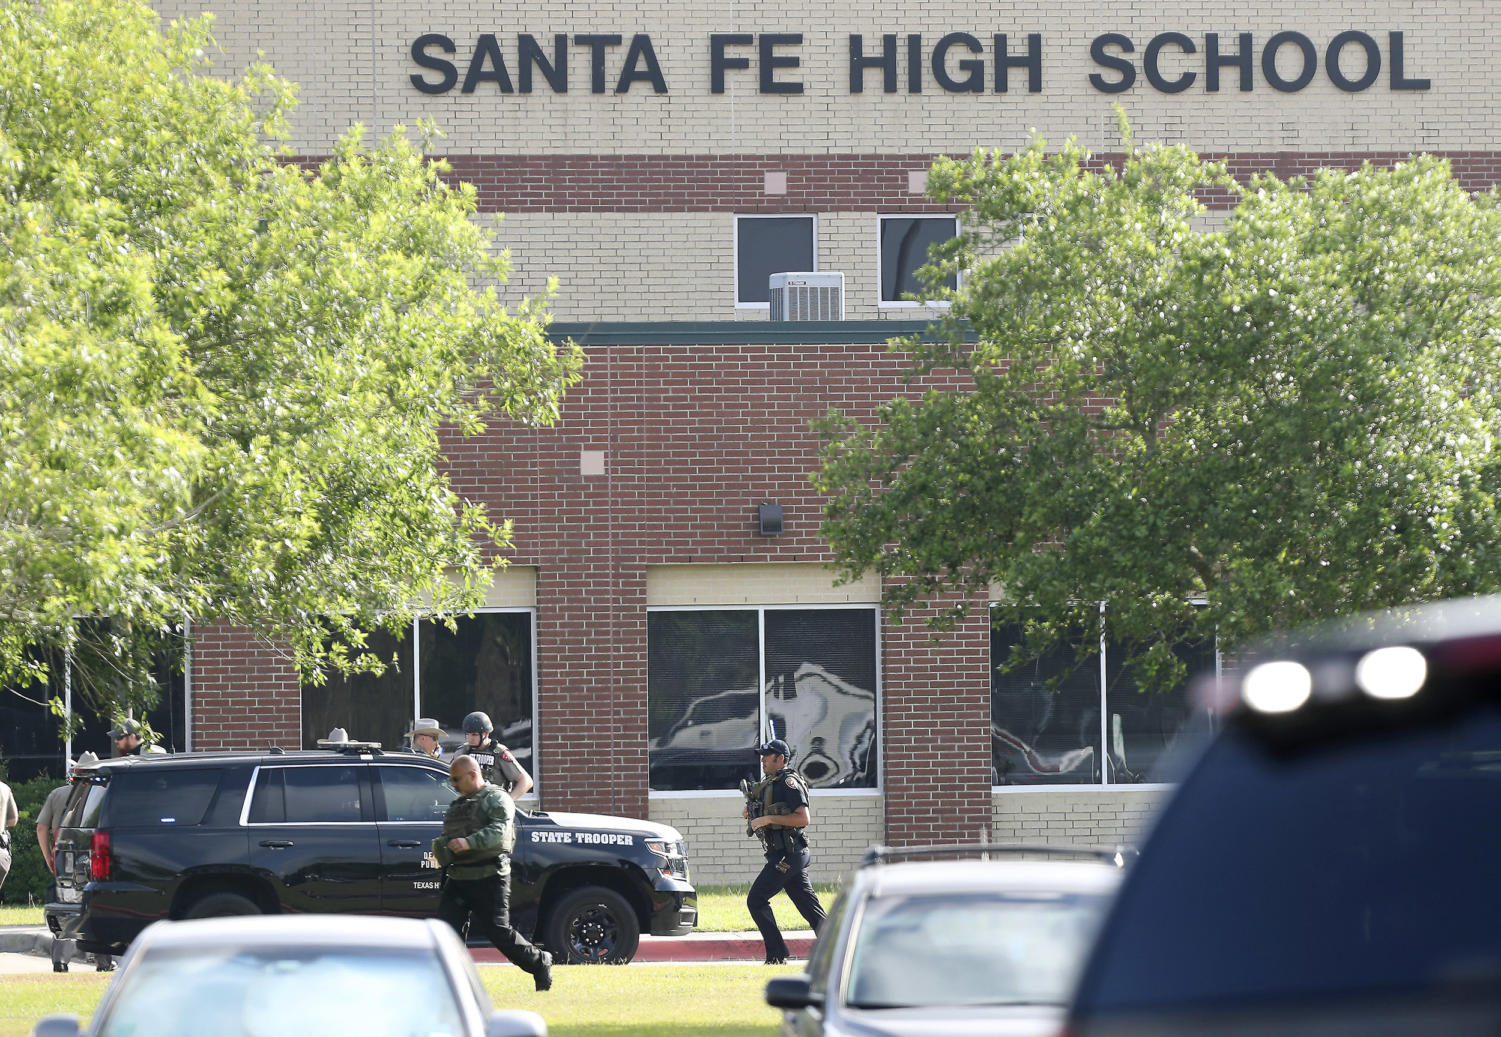 Law+enforcement+officers+responding+to+Santa+Fe+shooting.